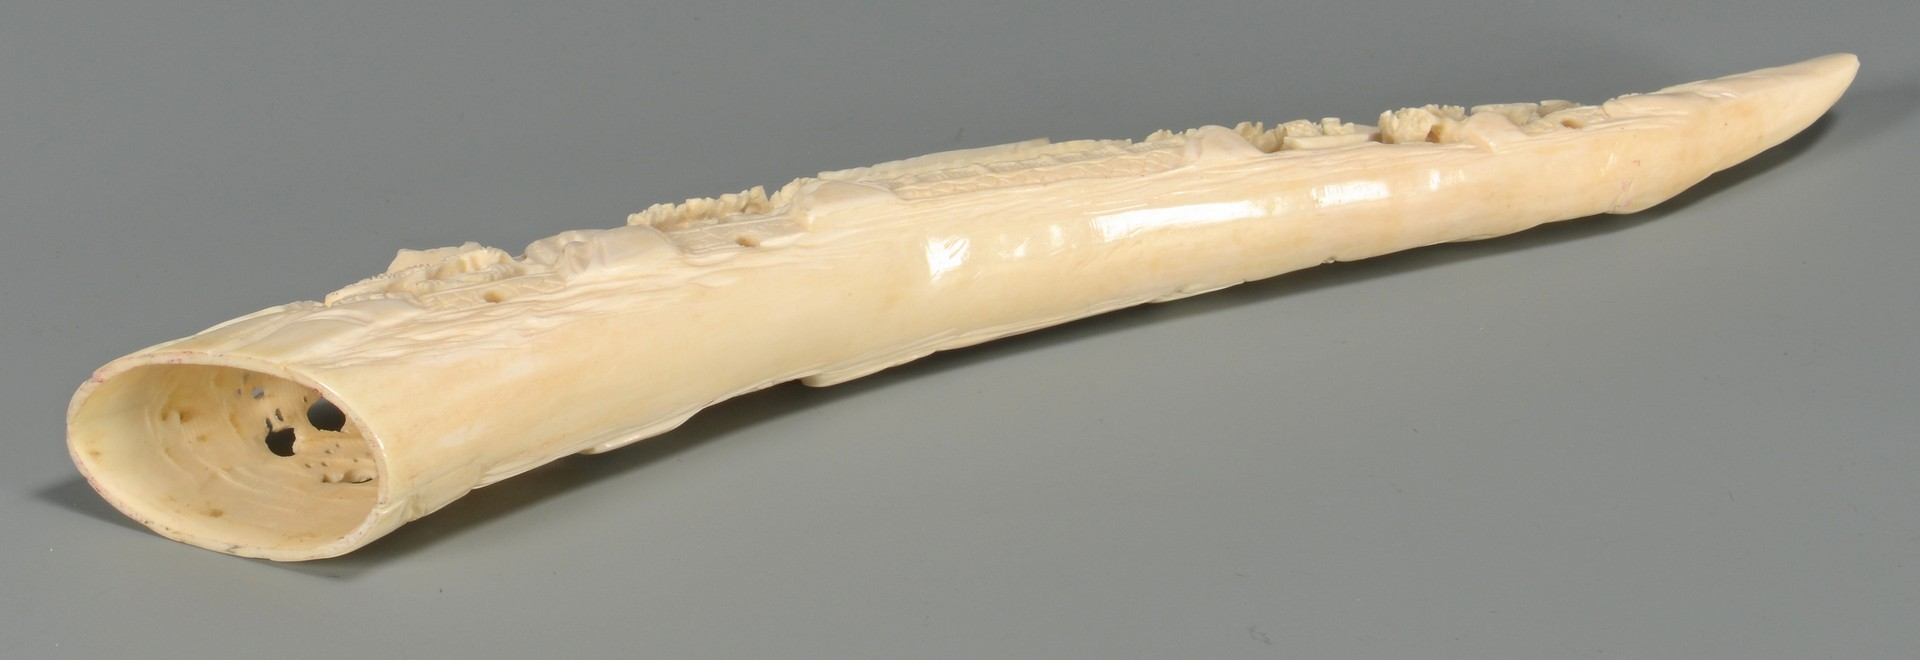 Lot 374: Chinese Carved Ivory Tusk, Openwork Bridge